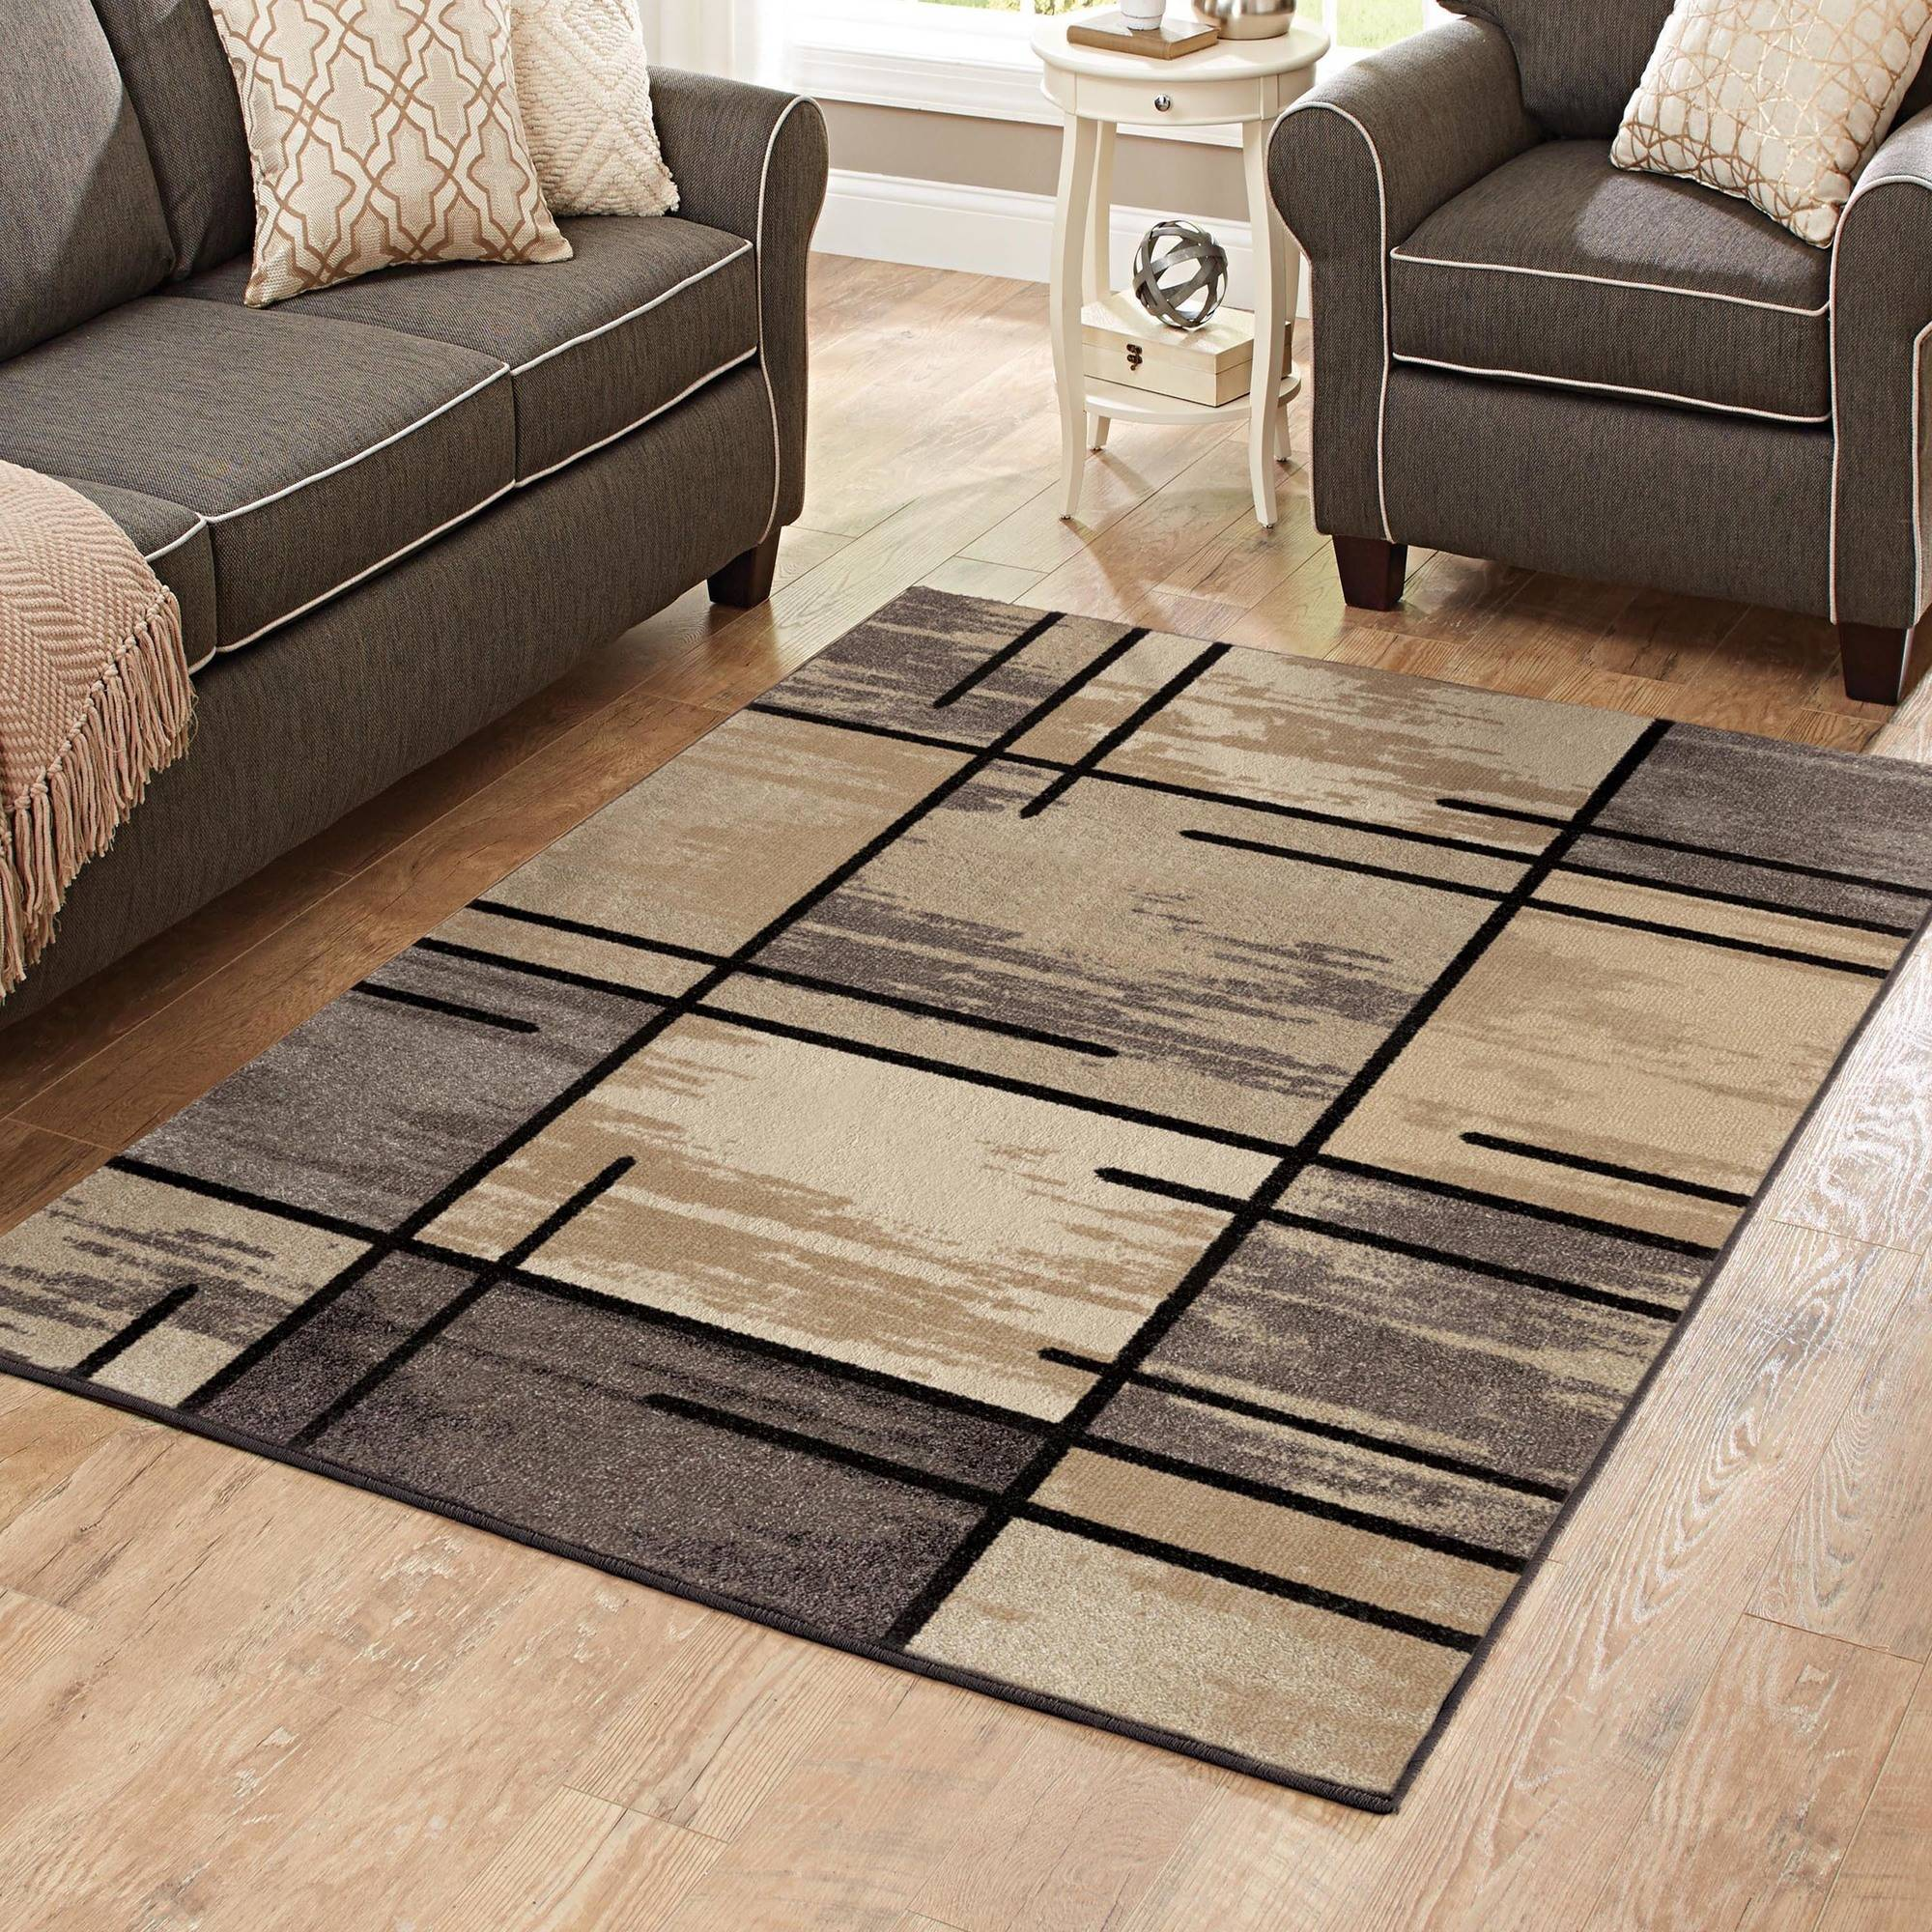 Better homes and gardens spice grid area rug ebay - Better homes and gardens iron fleur area rug ...